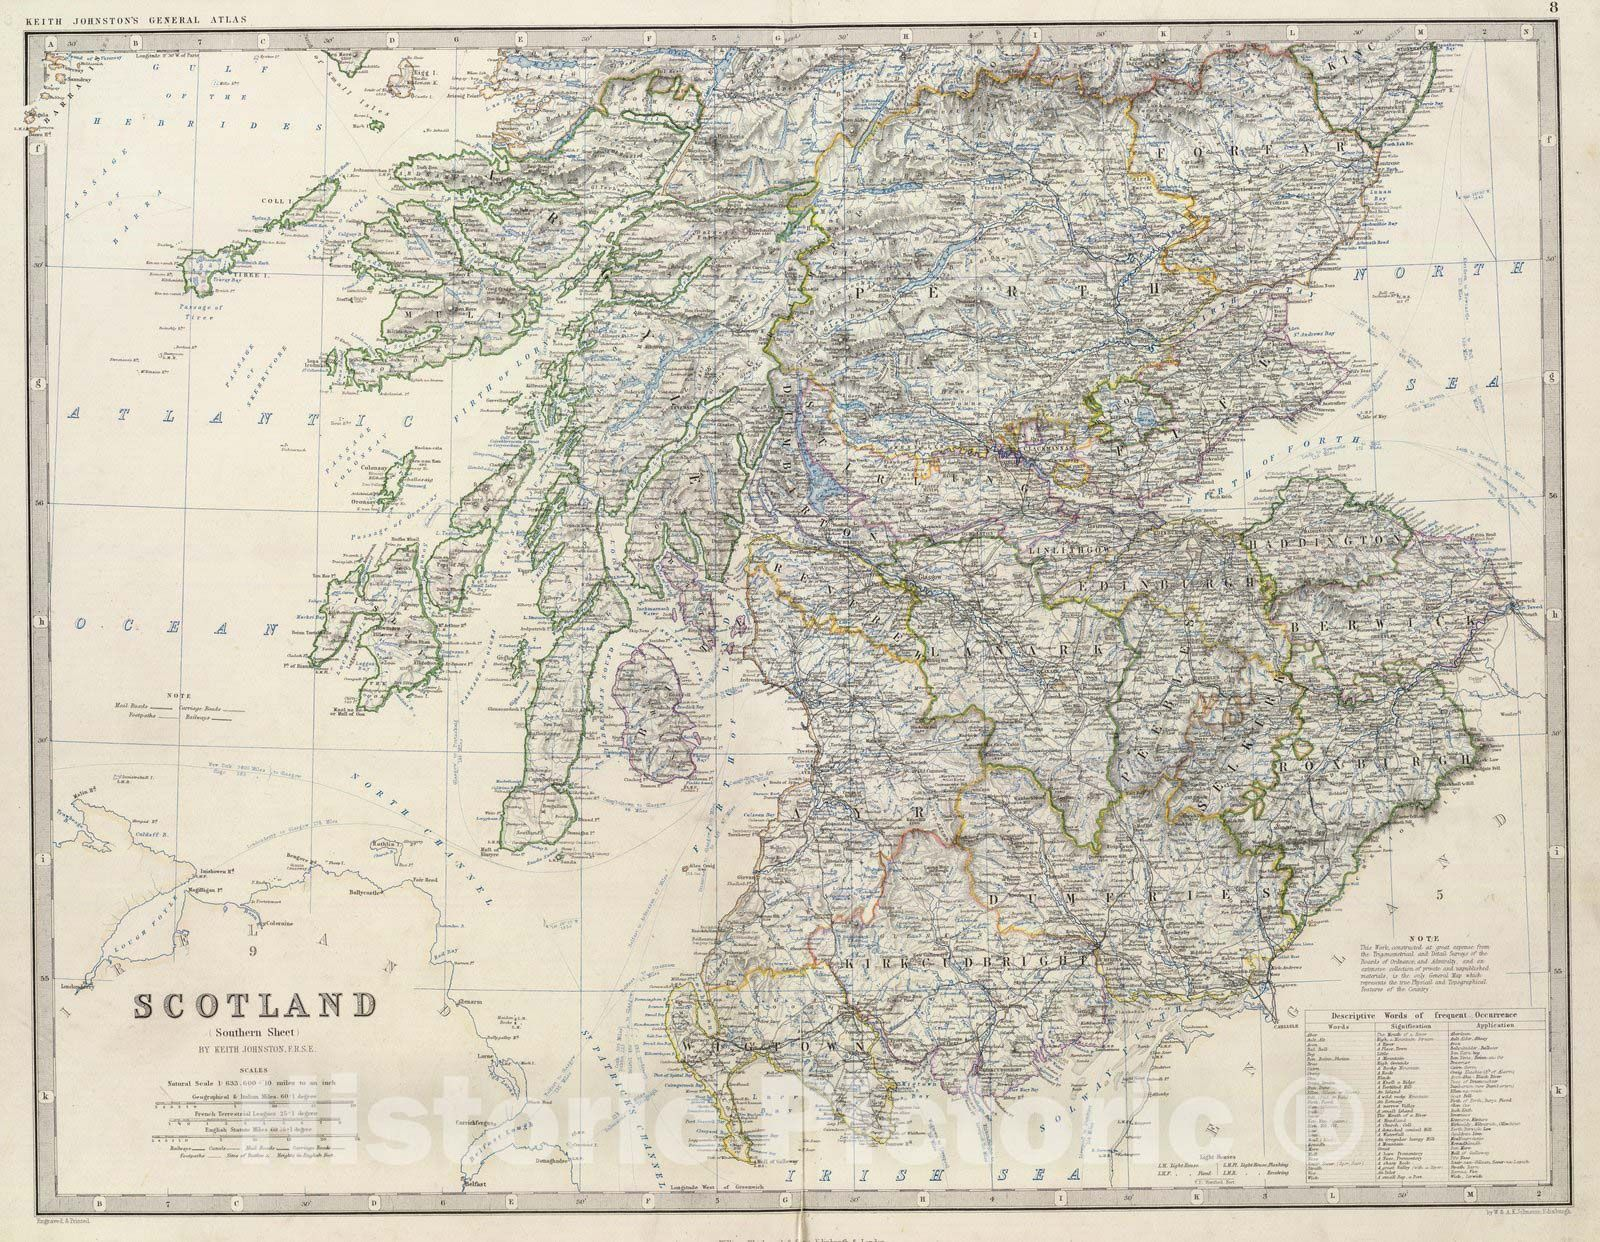 <p>Scotland, southern sheet, by Keith Johnston, F.R.S.E. Engraved & printed by W. & A.K. Johnston, Edinburgh. William Blackwood & Sons, Edinburgh & London, (1861) | The royal atlas of modern geography, exhibiting, in a series of entirely original and authentic maps, the present condition of geographical discovery and research in the several countries, empires, and states of the world by Alexander Keith Johnston ... With a special index to each map. William Blackwood and Sons, Edi